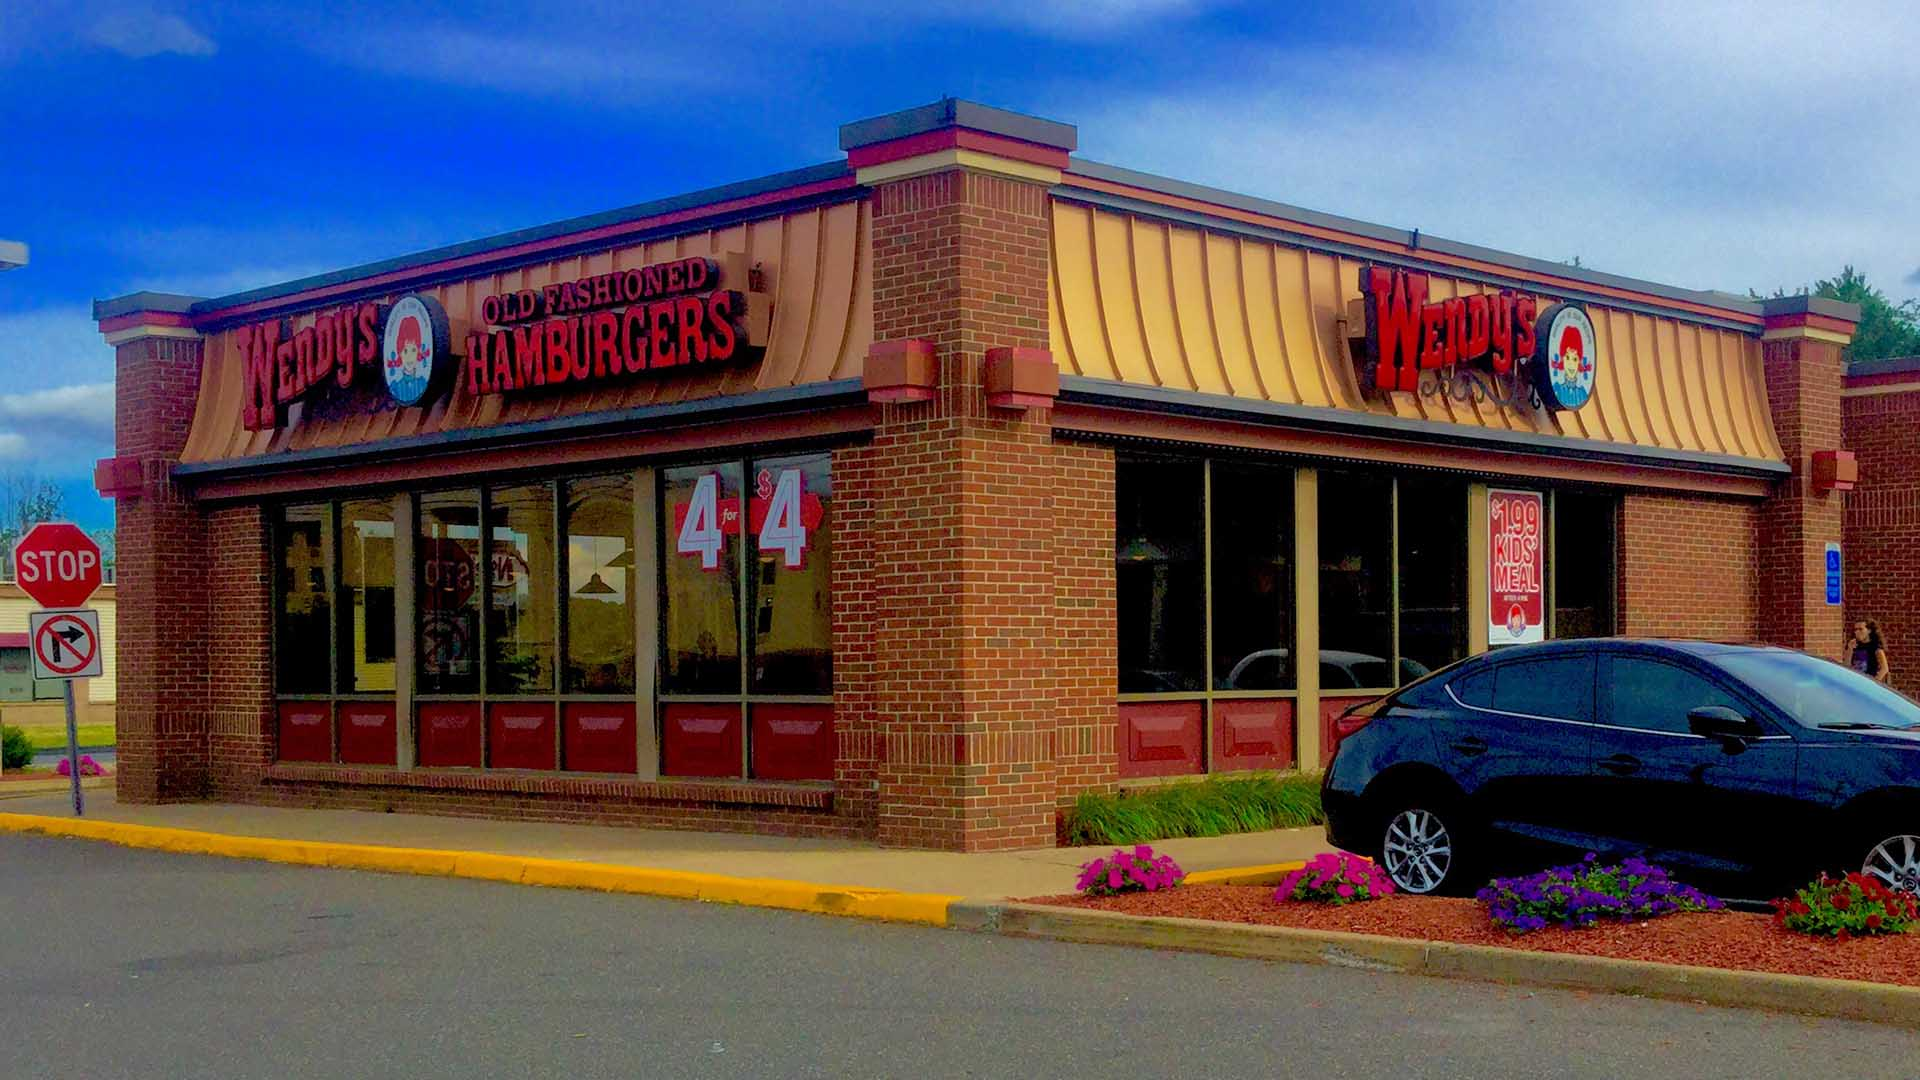 US Burger Chain Wendy's Is Handing Out Free Burgers and Desserts in The Rocks Today